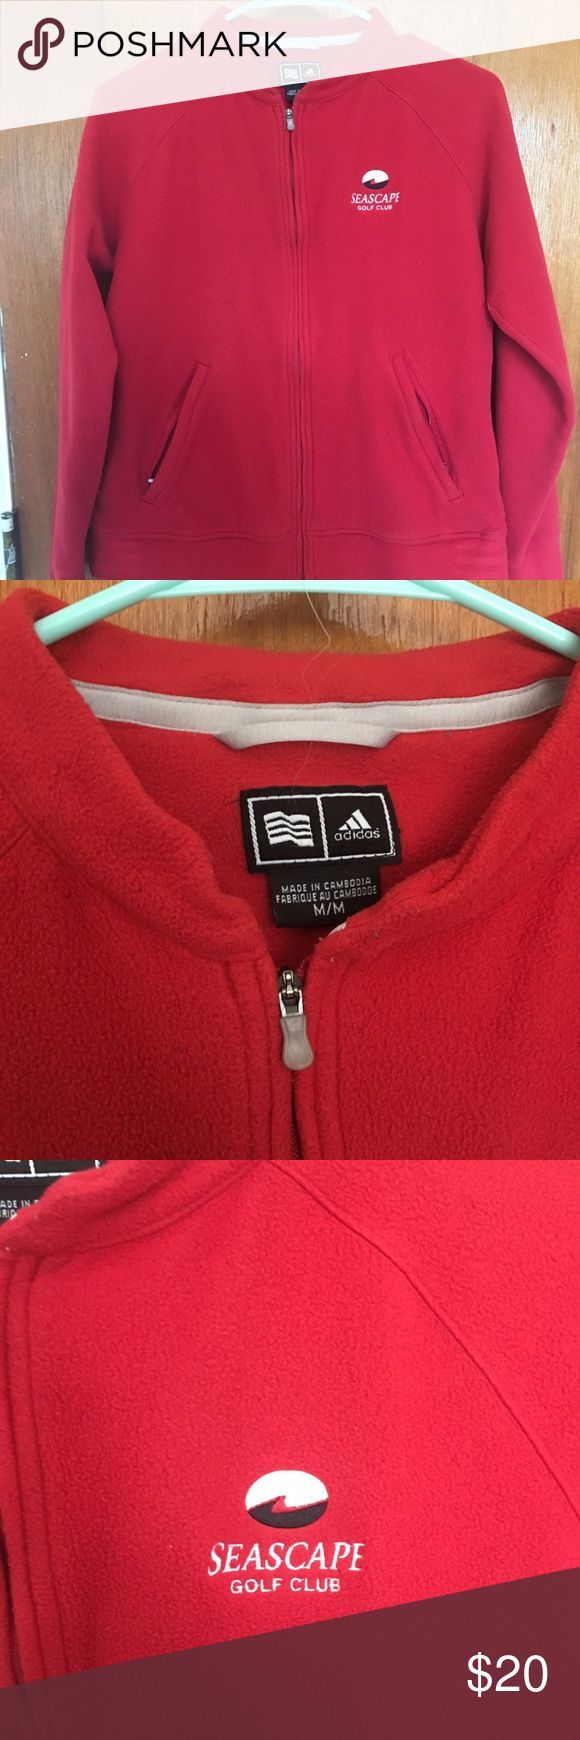 Adidas zip up fleece Red zip up adidas fleece. From seascape golf club, very soft and warm. Excellent condition! adidas Tops Sweatshirts & Hoodies